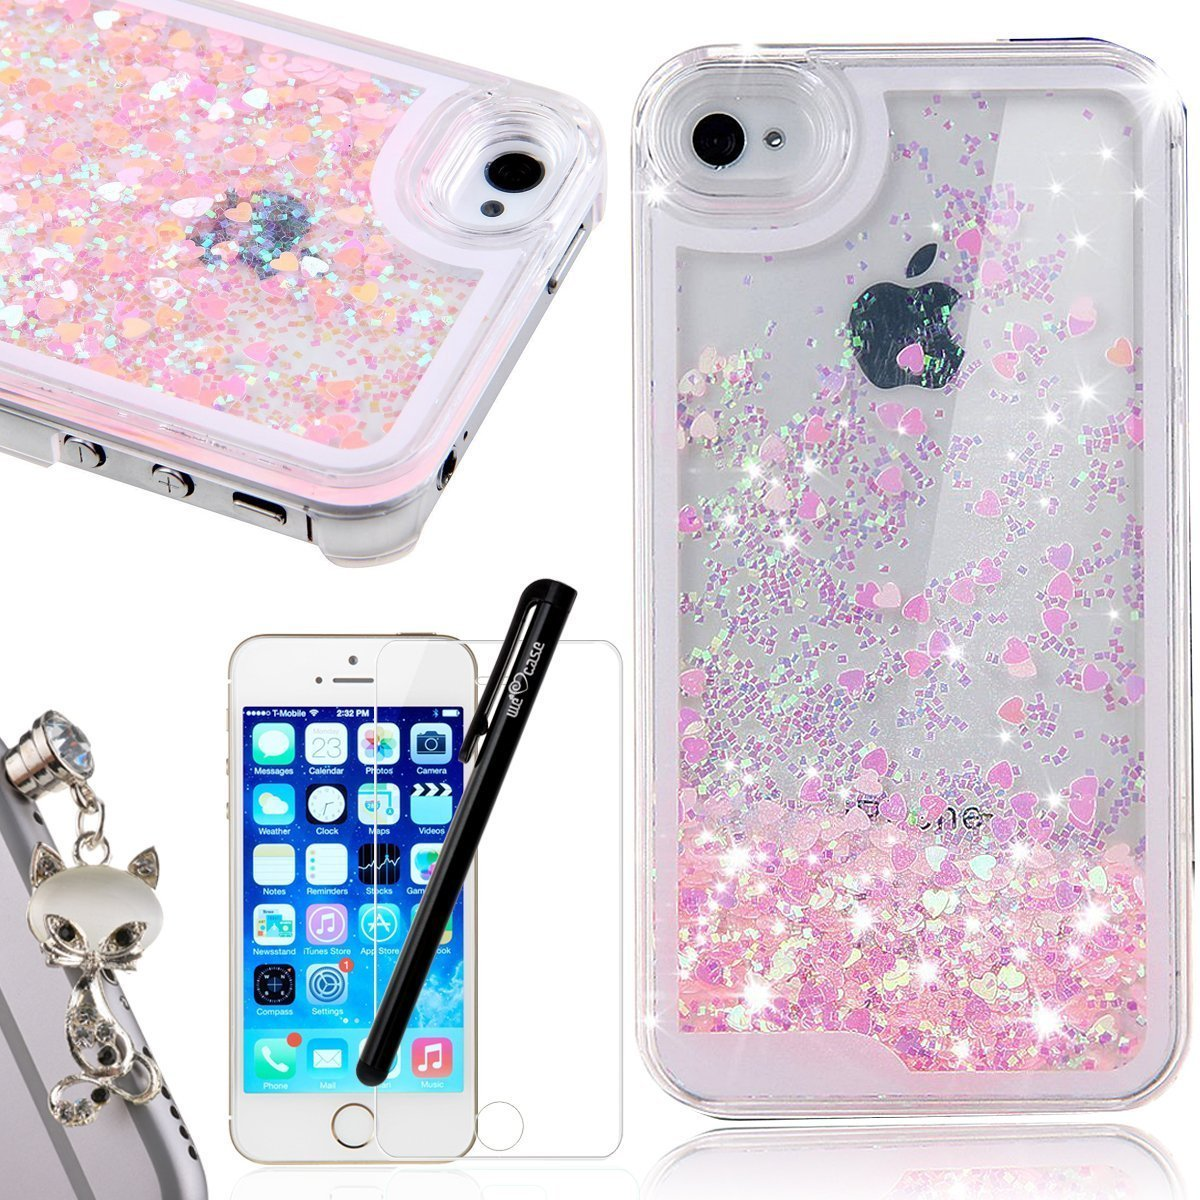 iPhone 5S Case, WeLoveCase iPhone 5 Case Glitter Bling Cover ...